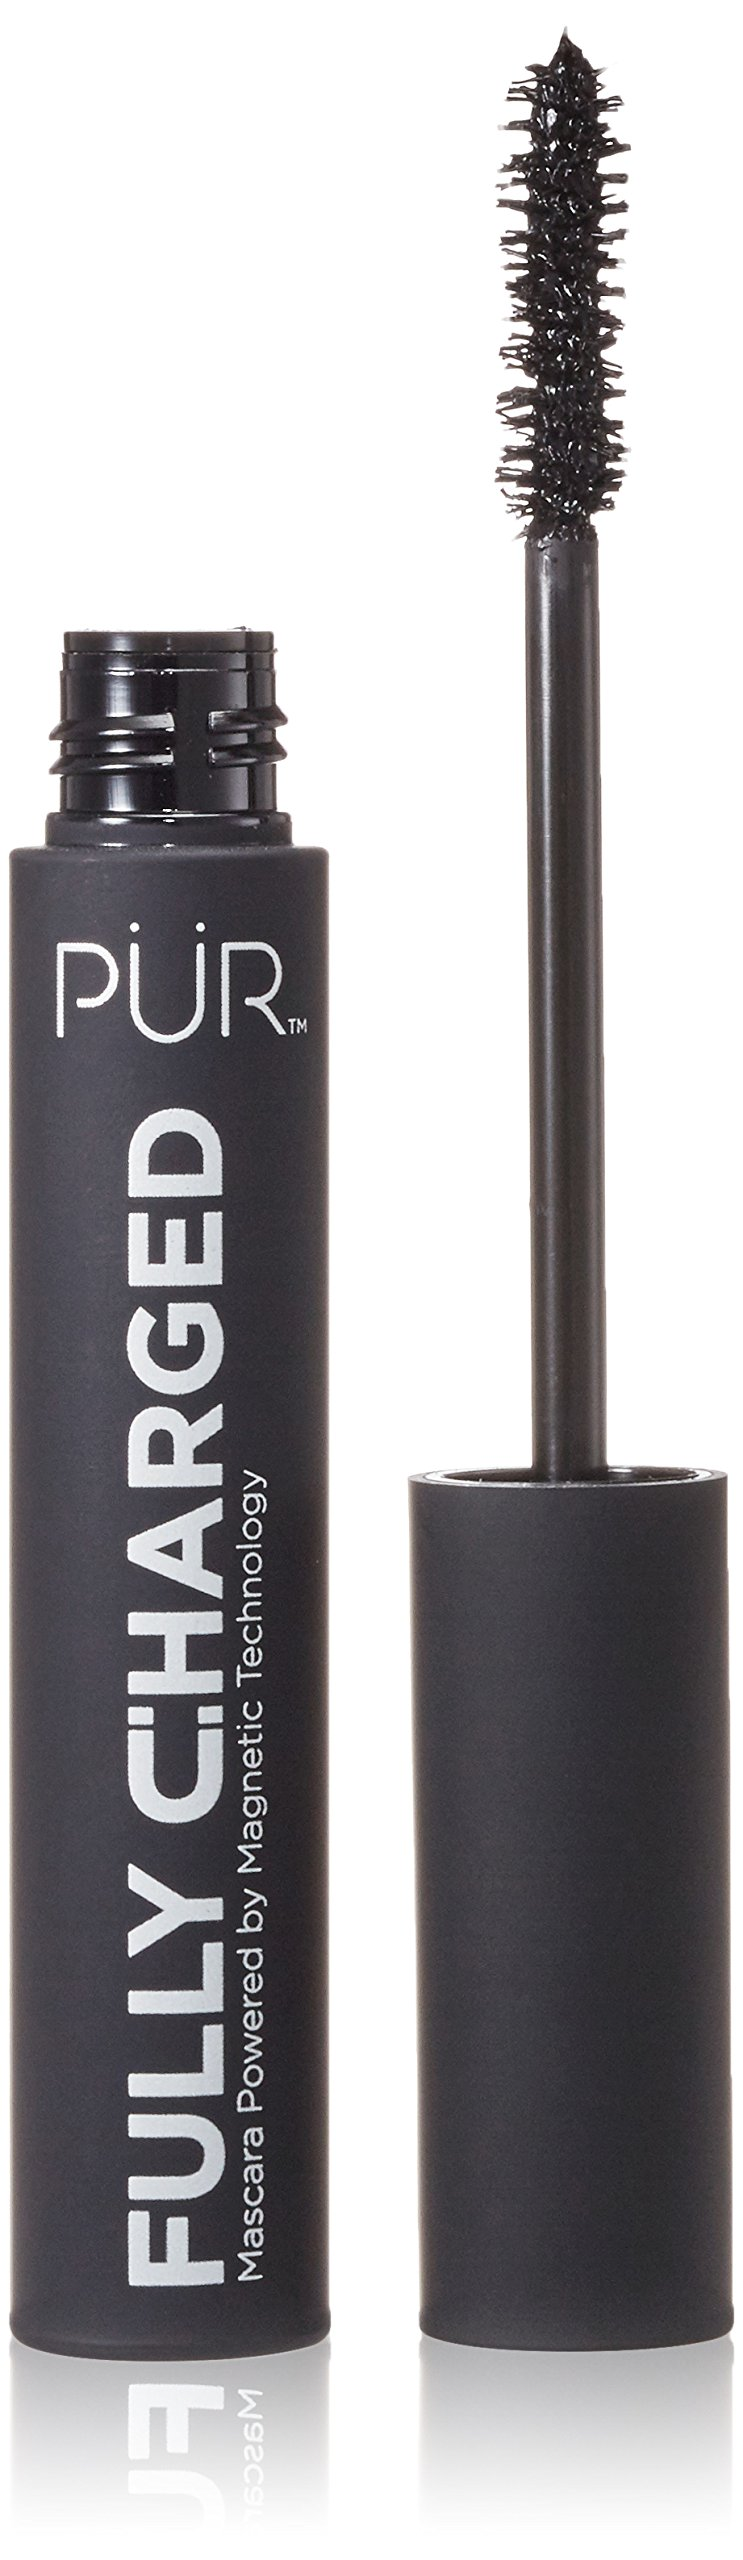 PÜR Fully Charged Mascara in Black.44 Fluid Ounce by Pur Minerals (Image #1)